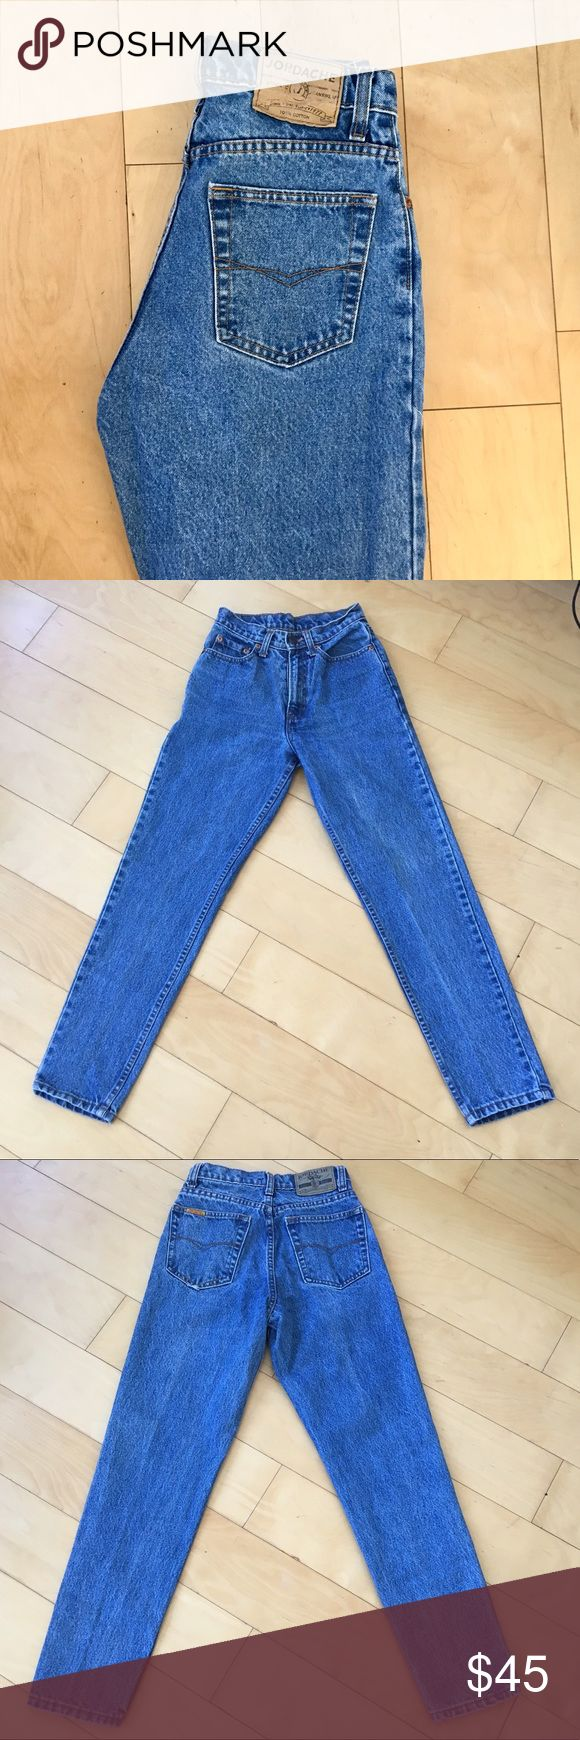 "VTG Jordache high waisted tapered leg jeans Super clean, flattering high waisted mom jeans from throwback brand Jordache. High quality denim comparable to vintage Levi's. Tag say size 7/8 but I personally think they fit more like a modern size 25 or size 0. Please compare measurements below with a pair of jeans that you own, vintage jeans are a bit tricky to convert to modern sizes. **PLEASE BE ADVISED THAT ONLY ONE PAIR IS AVAILABLE**  Tapered leg  Inseam- ~27.75""  Waist- ~25.25"" (12.75""…"